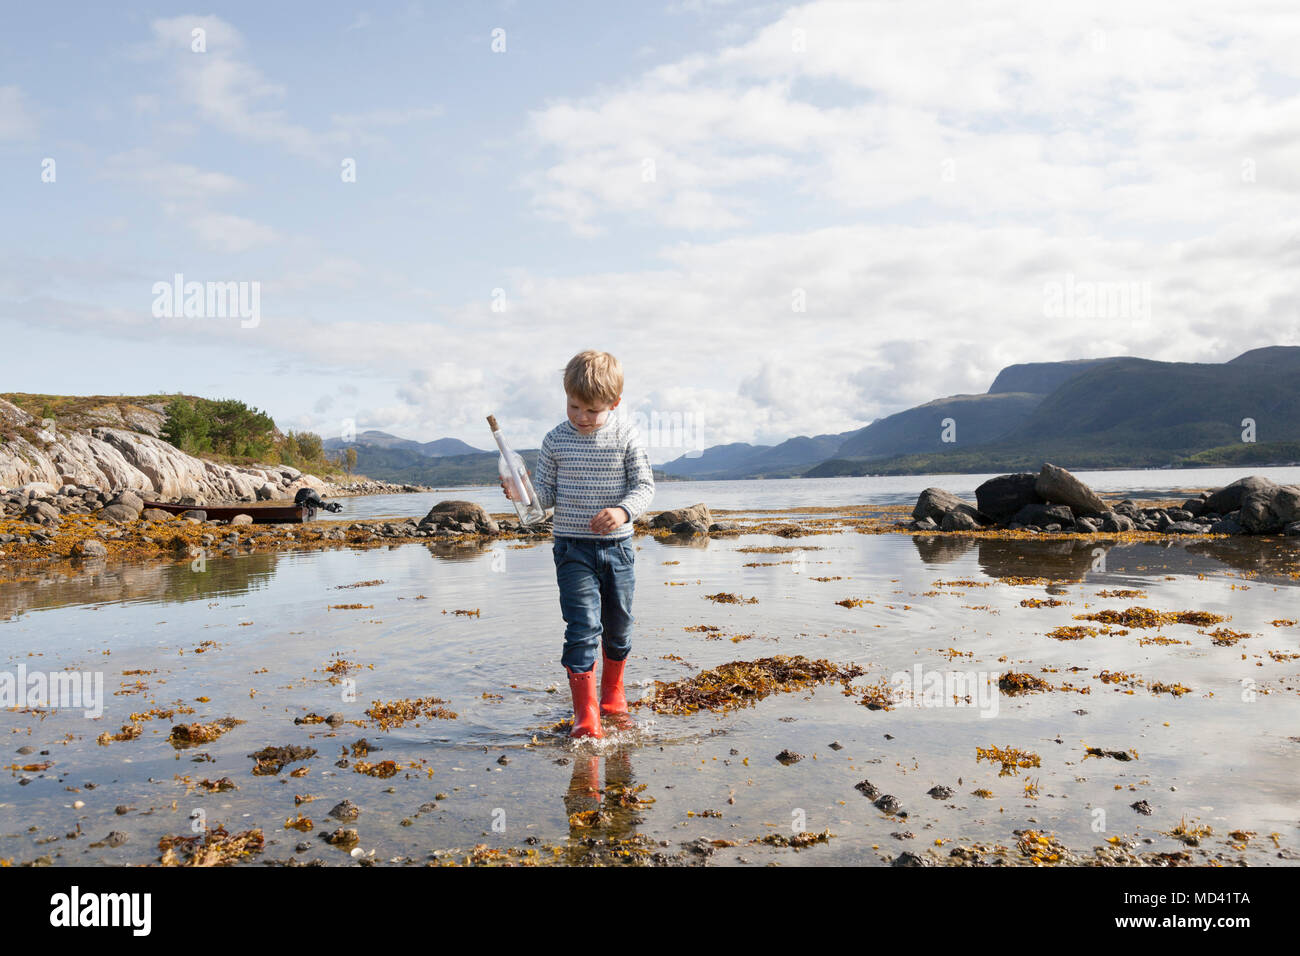 Boy with message in a bottle, Aure, More og Romsdal, Norway - Stock Image